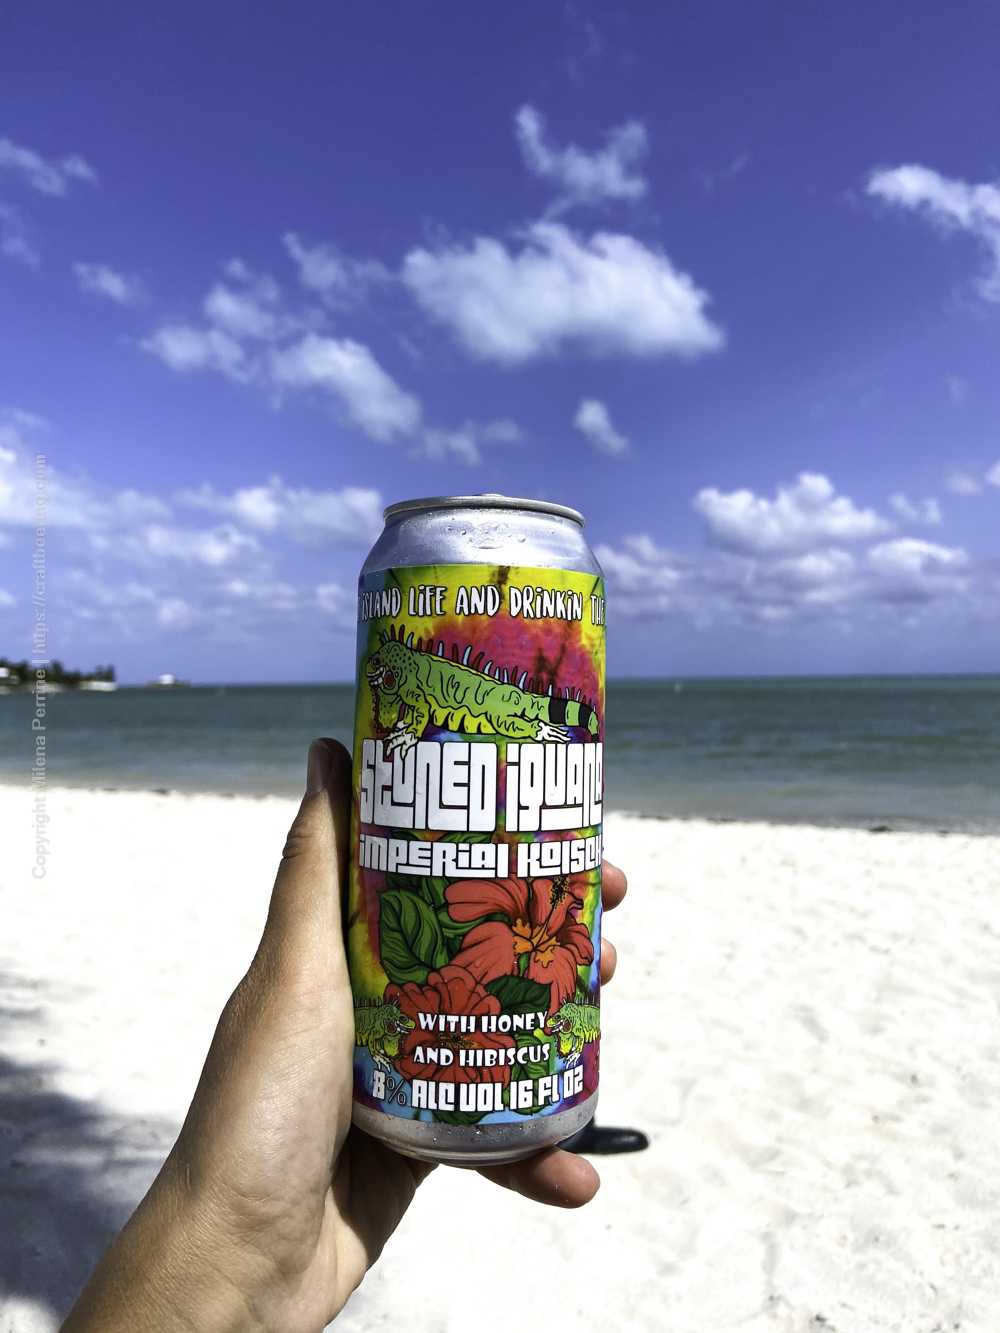 Imperial Kolsch pint can from Florida Keys Brewing Co. on the beach.